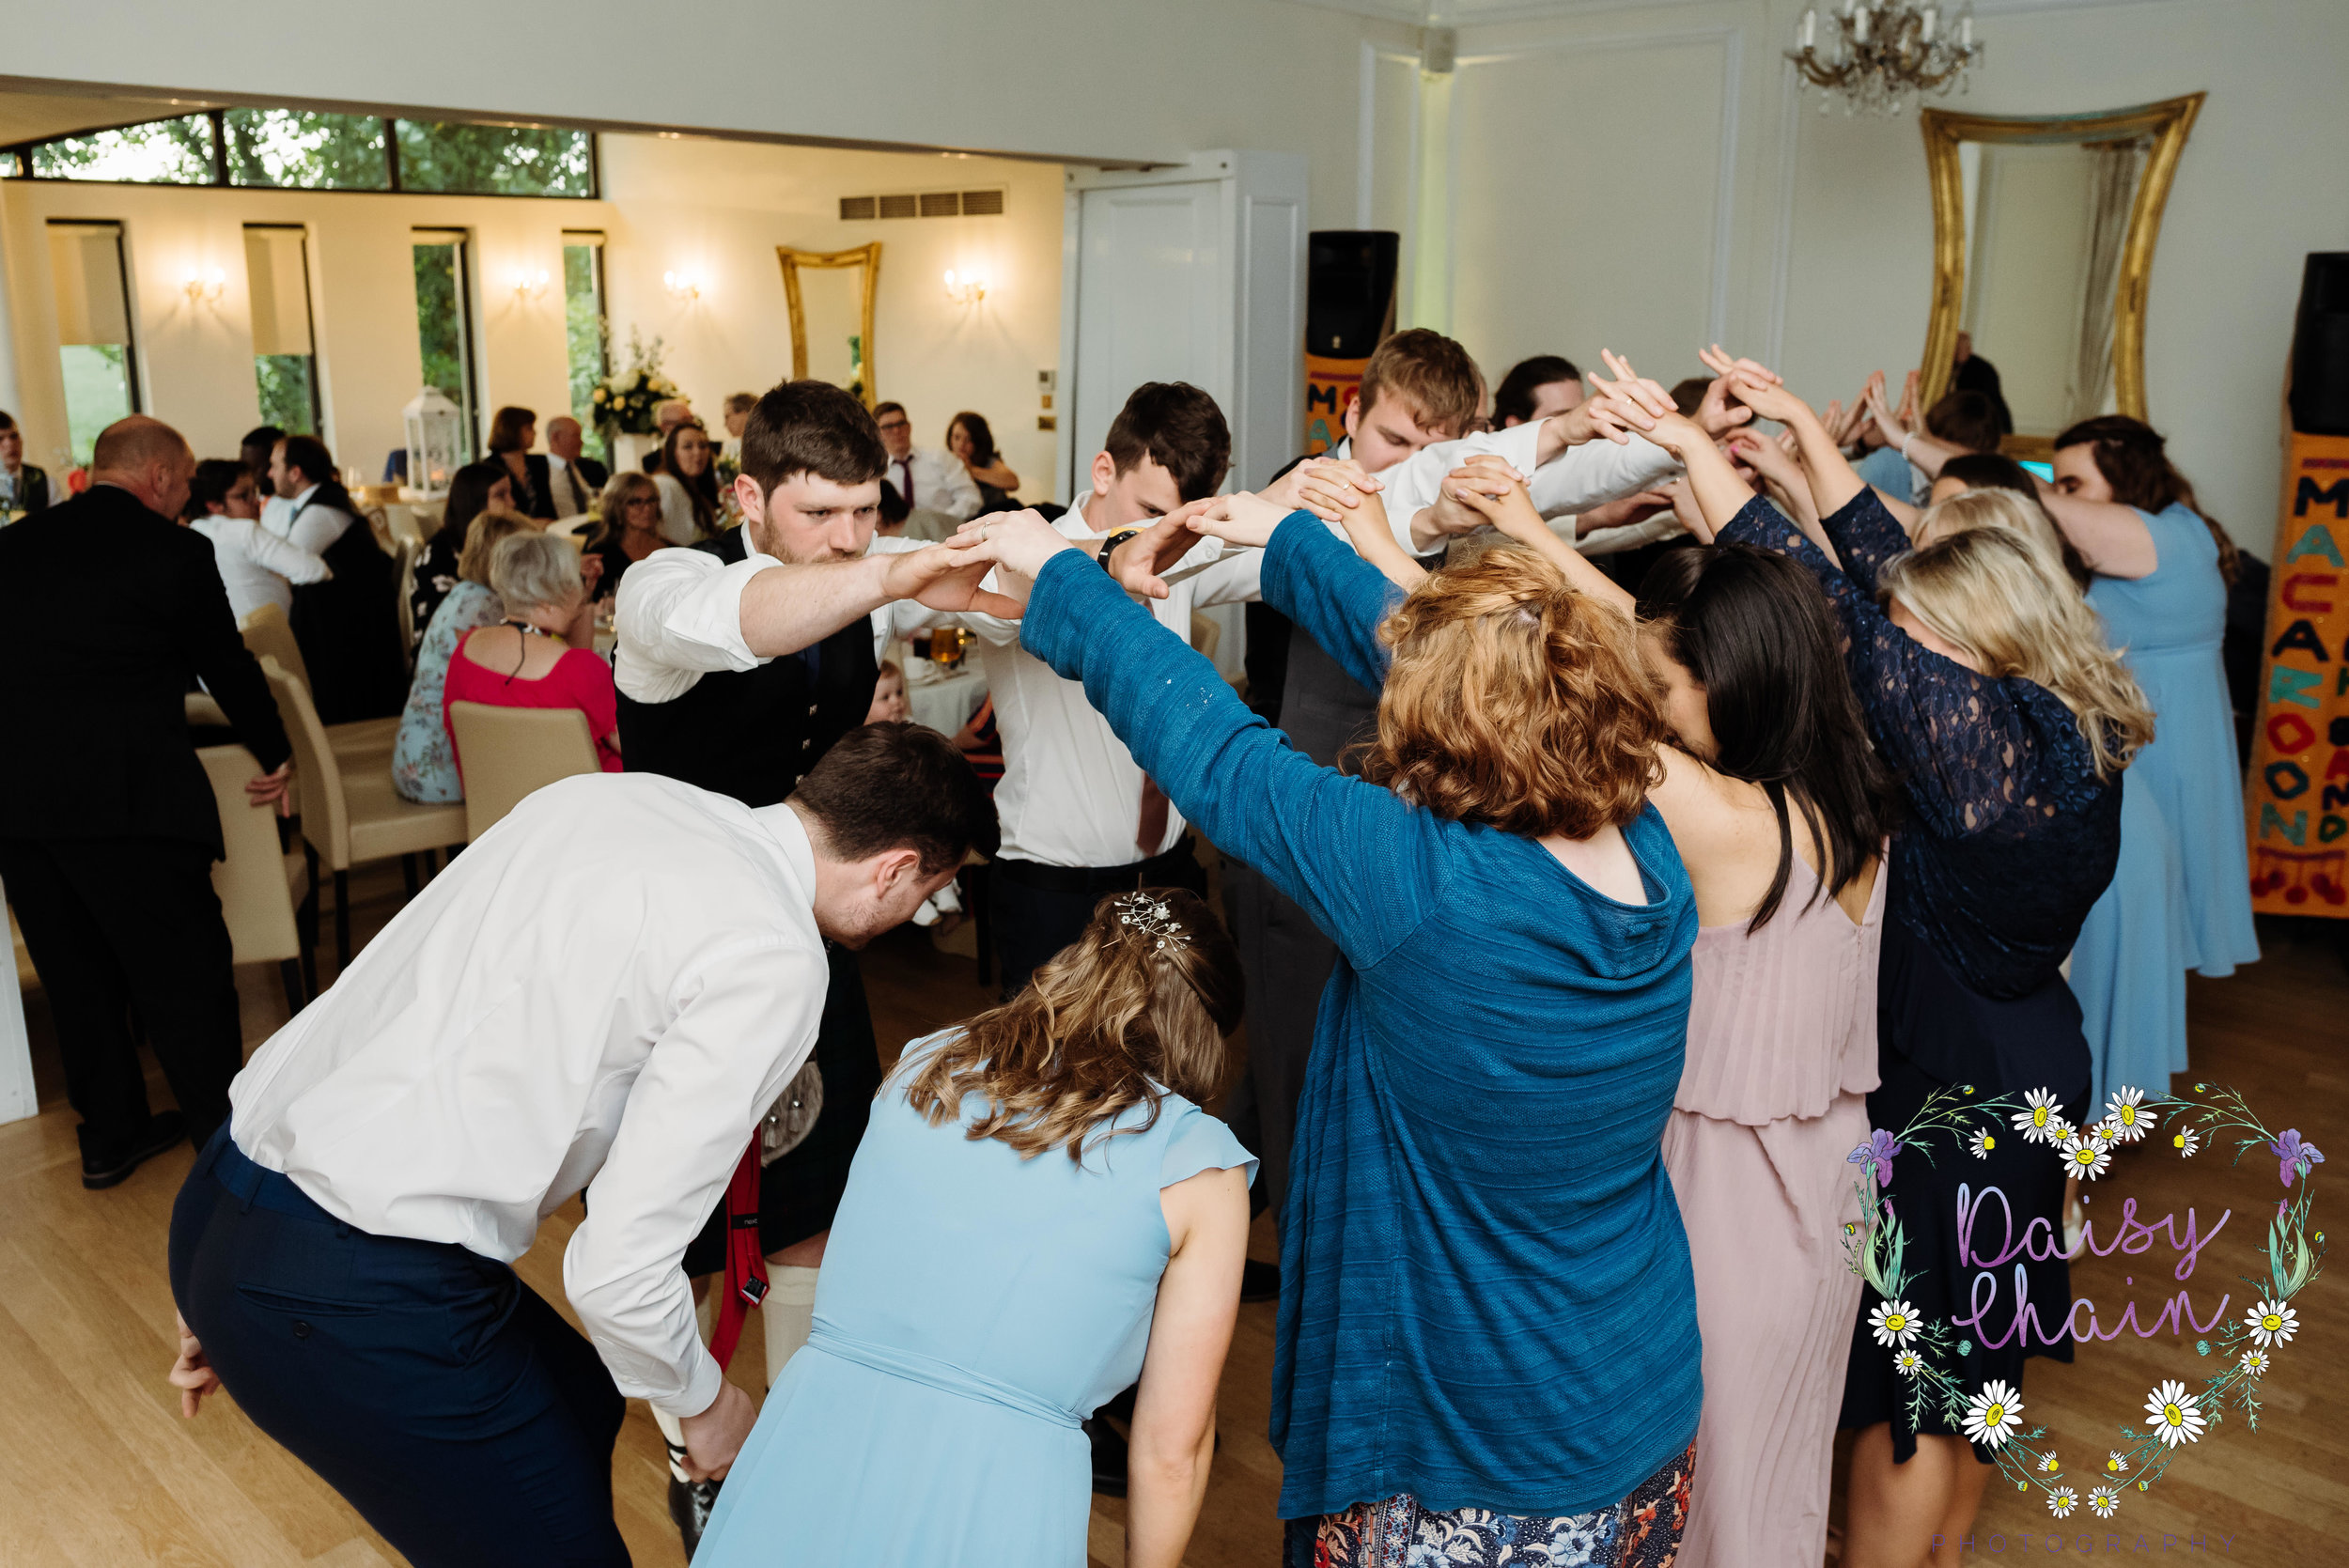 Dancing to a ceilidh band at a wedding